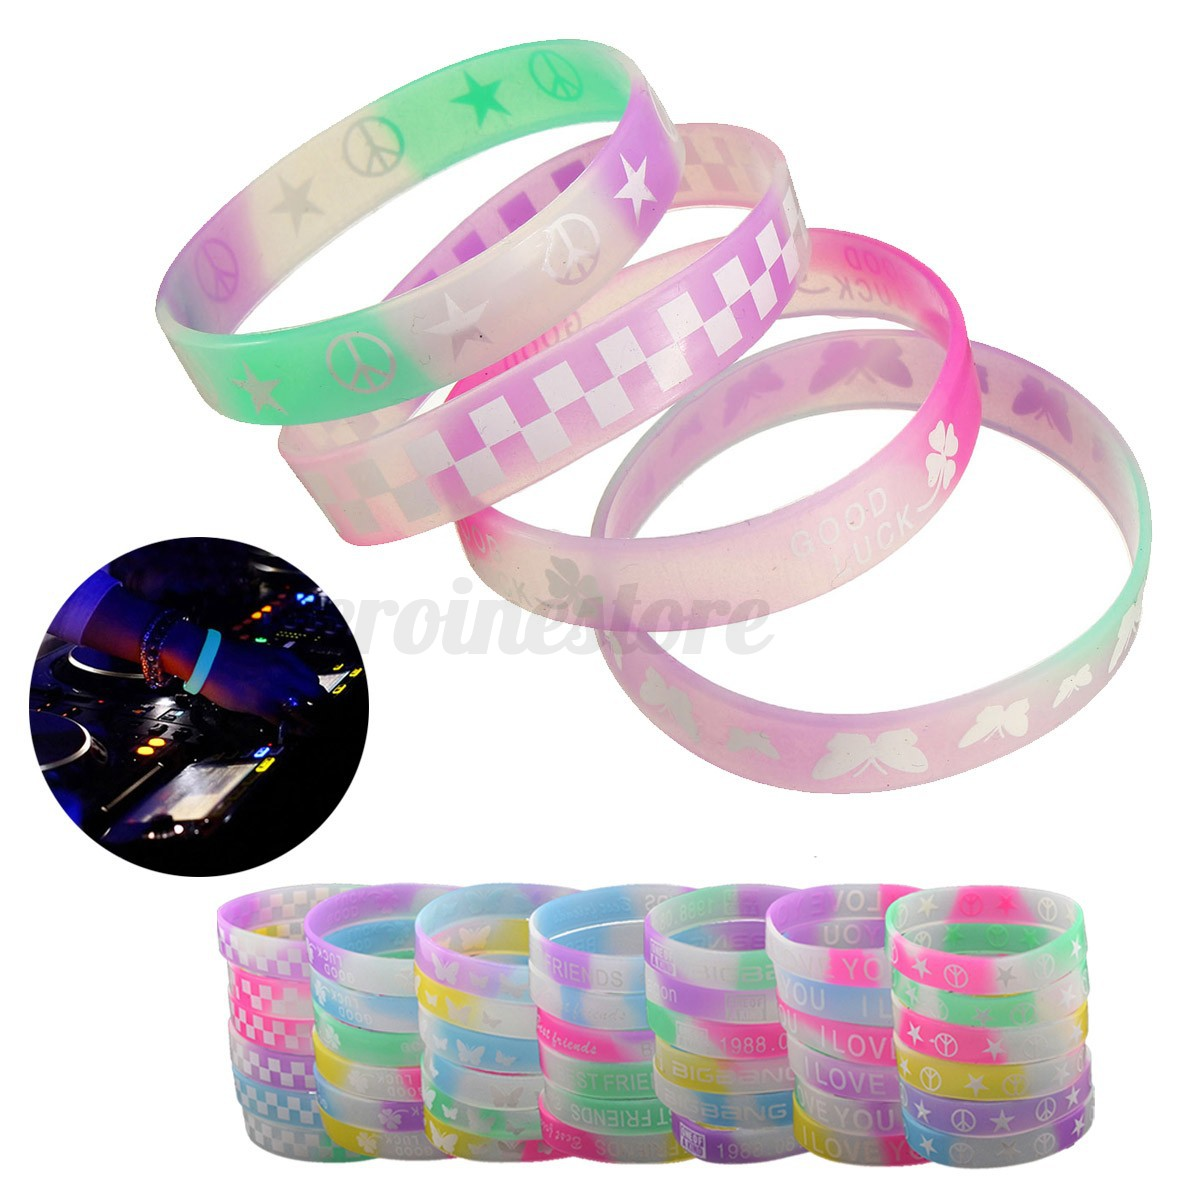 10x silikon gummi armb nder sport gummiarmband nacht beleuchte armband wristband ebay. Black Bedroom Furniture Sets. Home Design Ideas